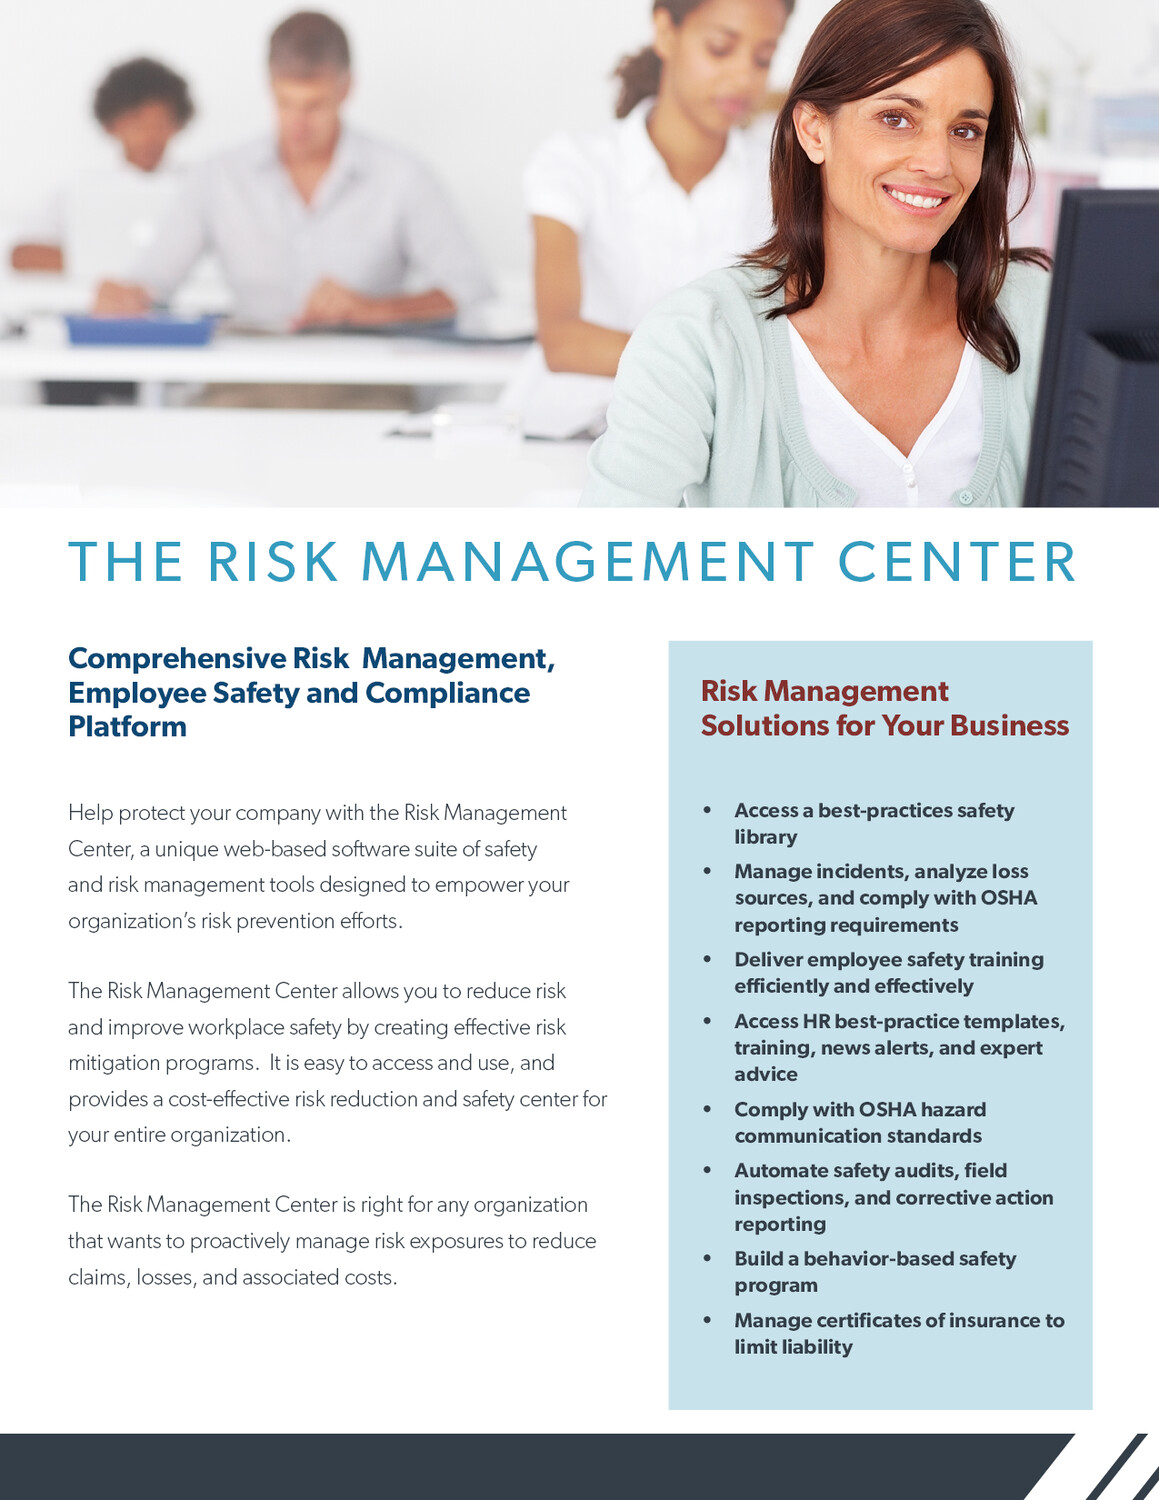 The Risk Management Center: A Web-Based Risk Reduction Platform